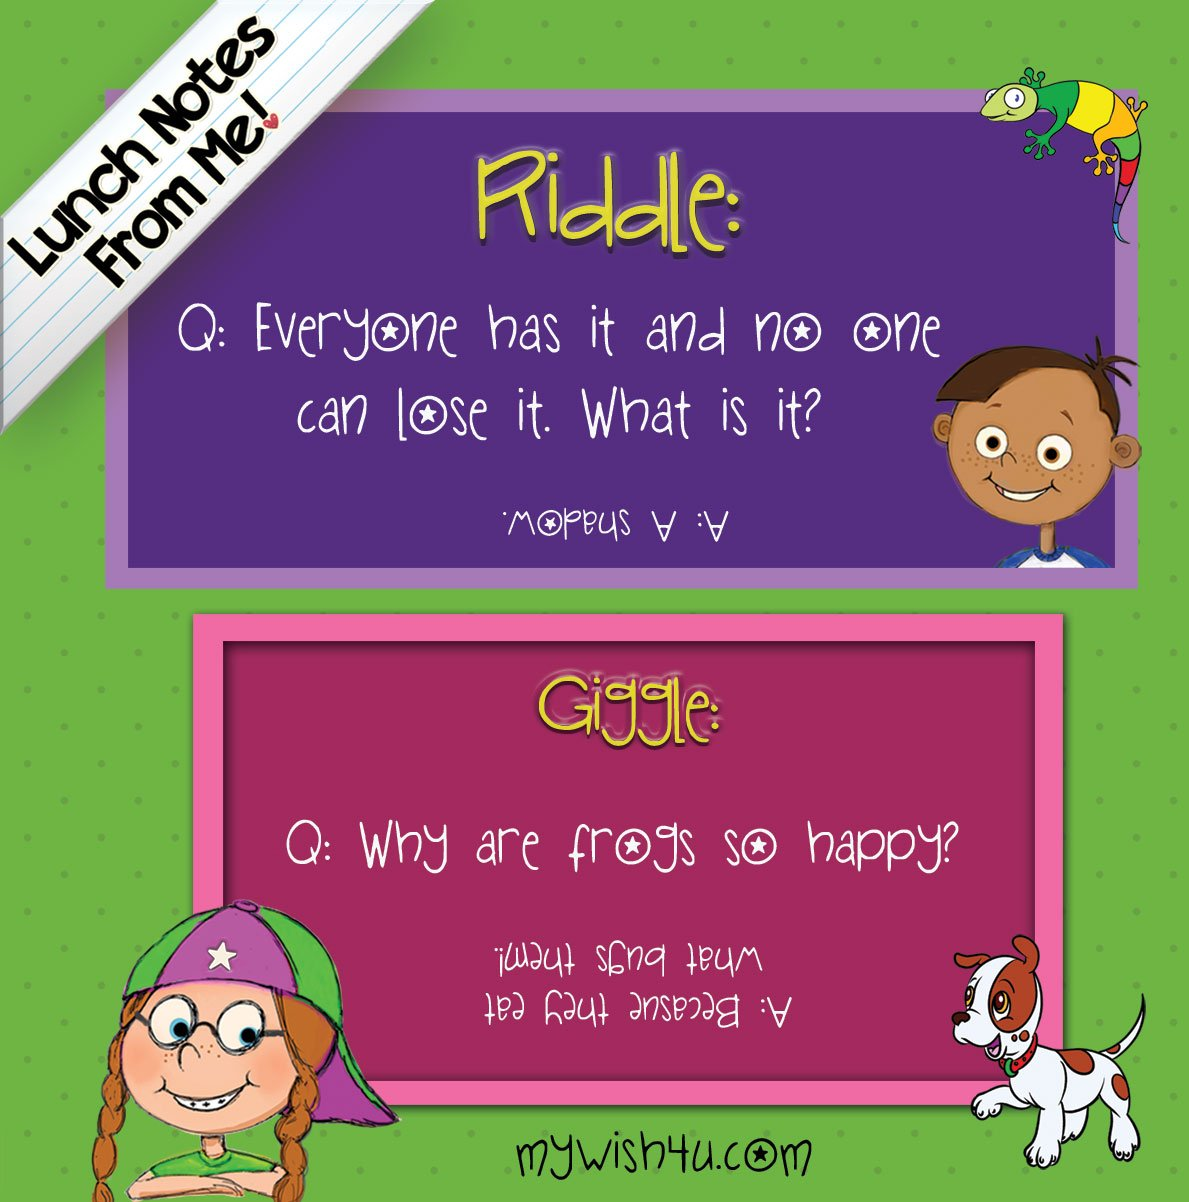 Lunch Notes From Me! Riddles & Giggles - 101 tear-off lunchbox notes ...